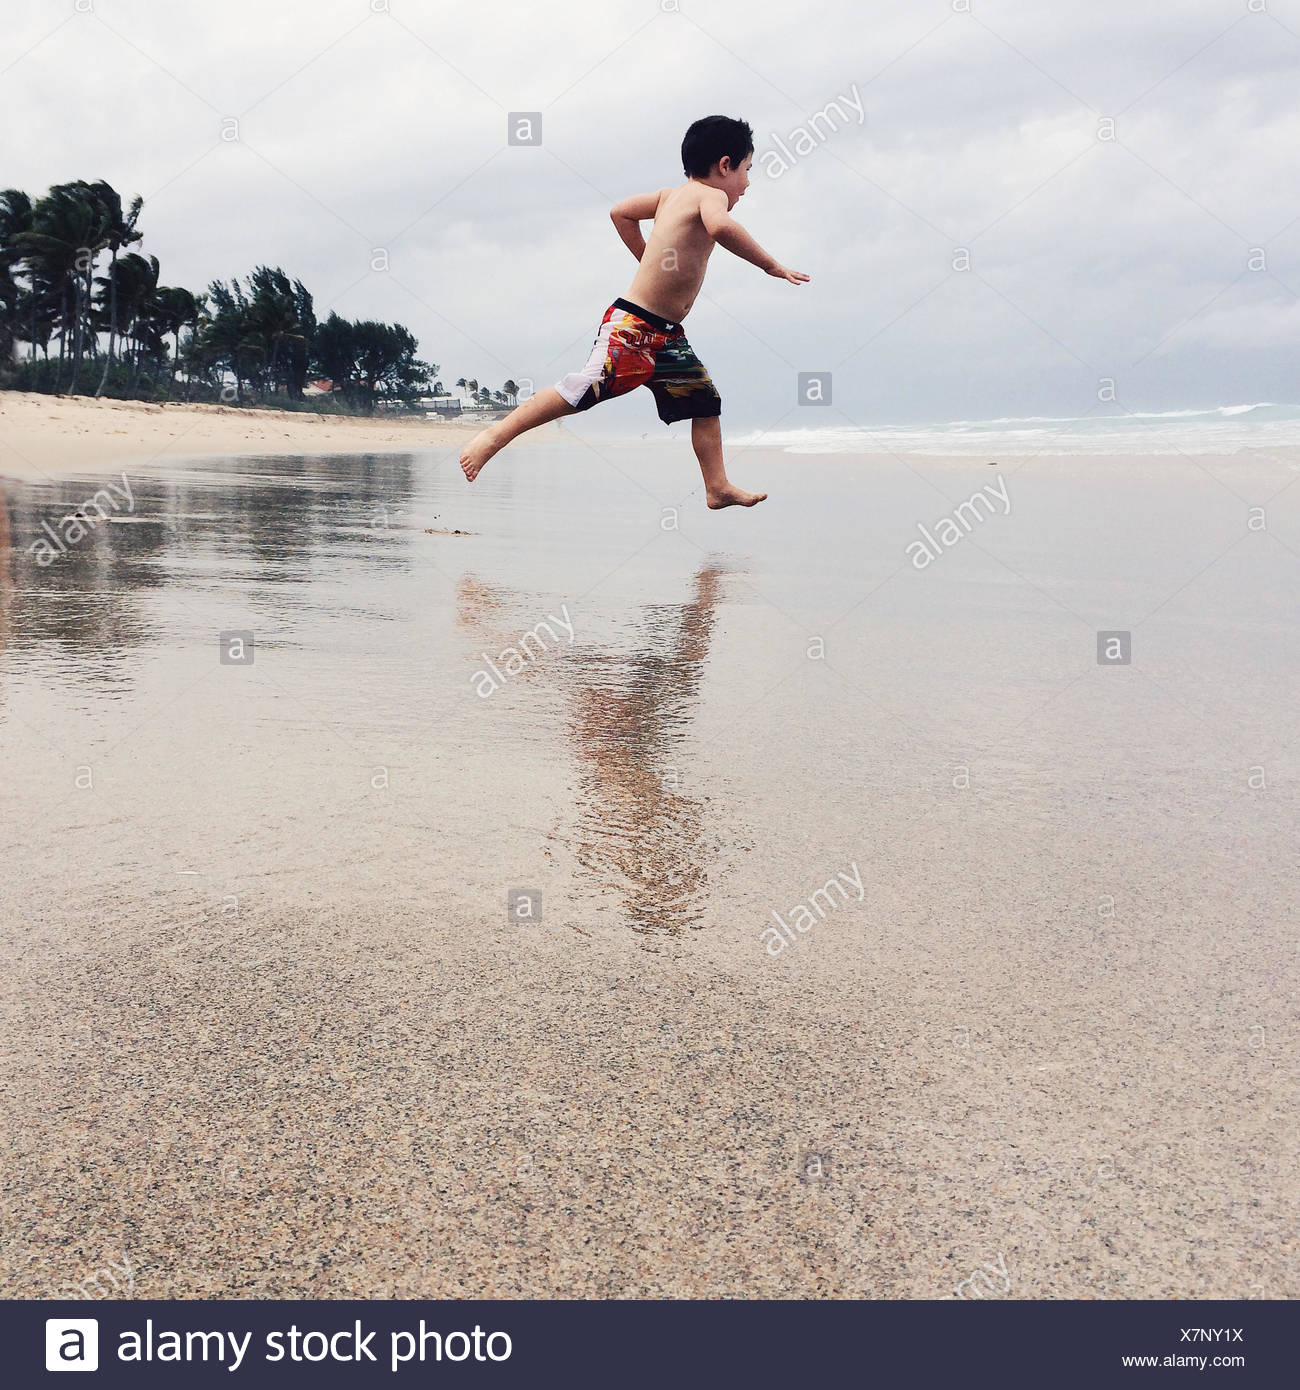 USA, Florida, Palm Beach County, West Palm Beach, Boy (2-3) running on beach - Stock Image